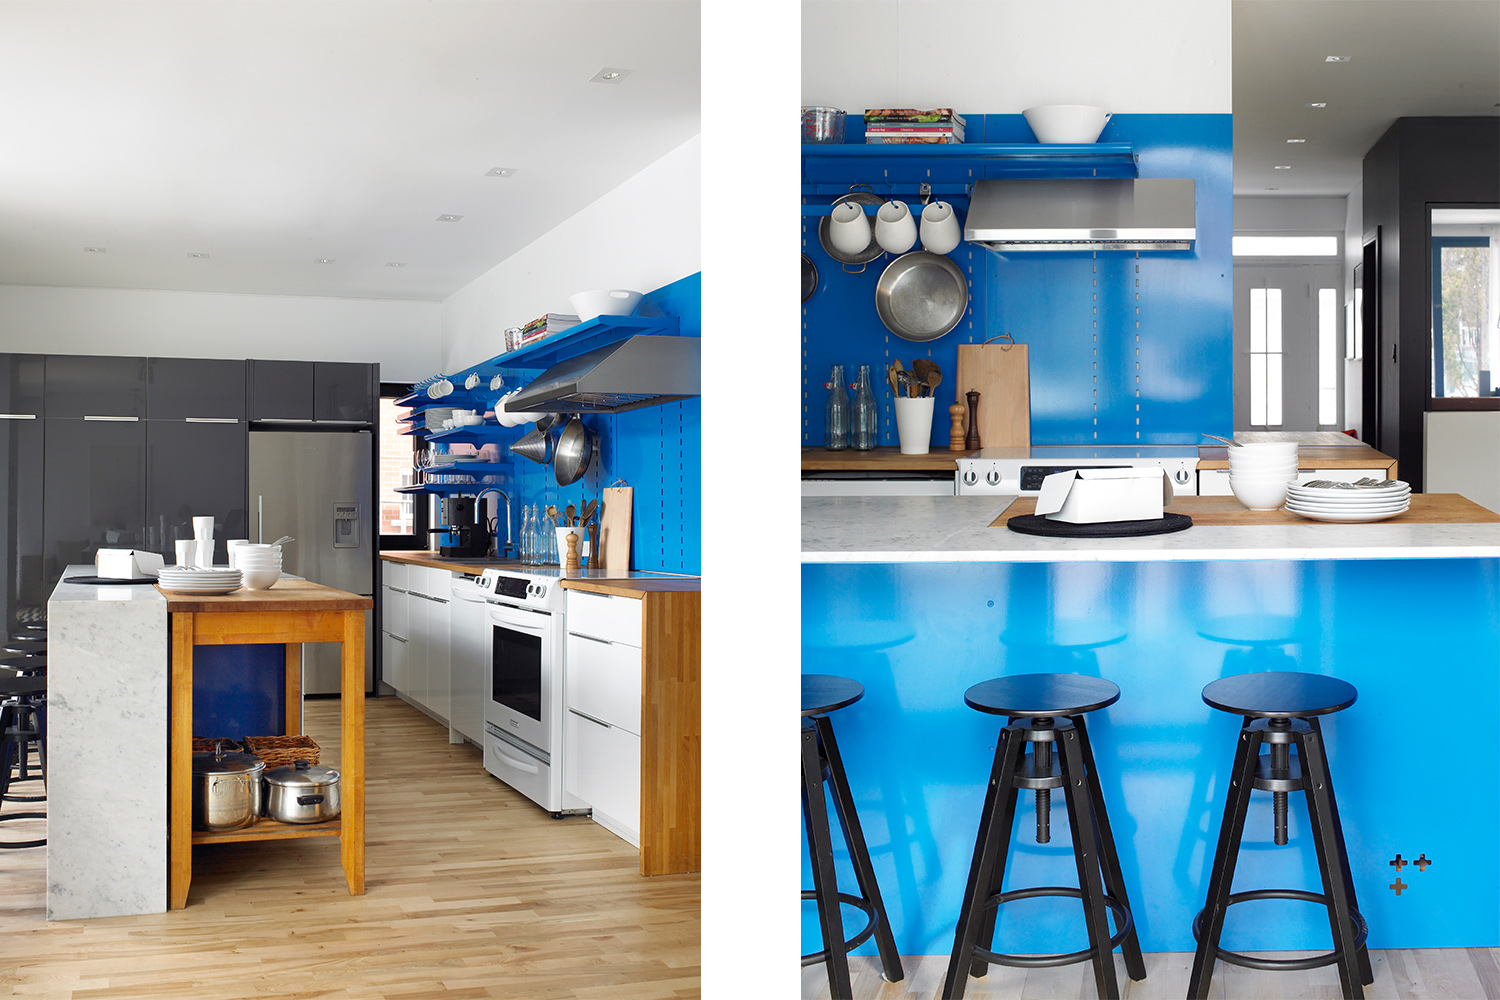 Renovation of kitchen. Storage wall with ikea cabinet and built-in fridge. Island with white quartz counter and integration of an existing wooden service. Finished island back in blue painted steel